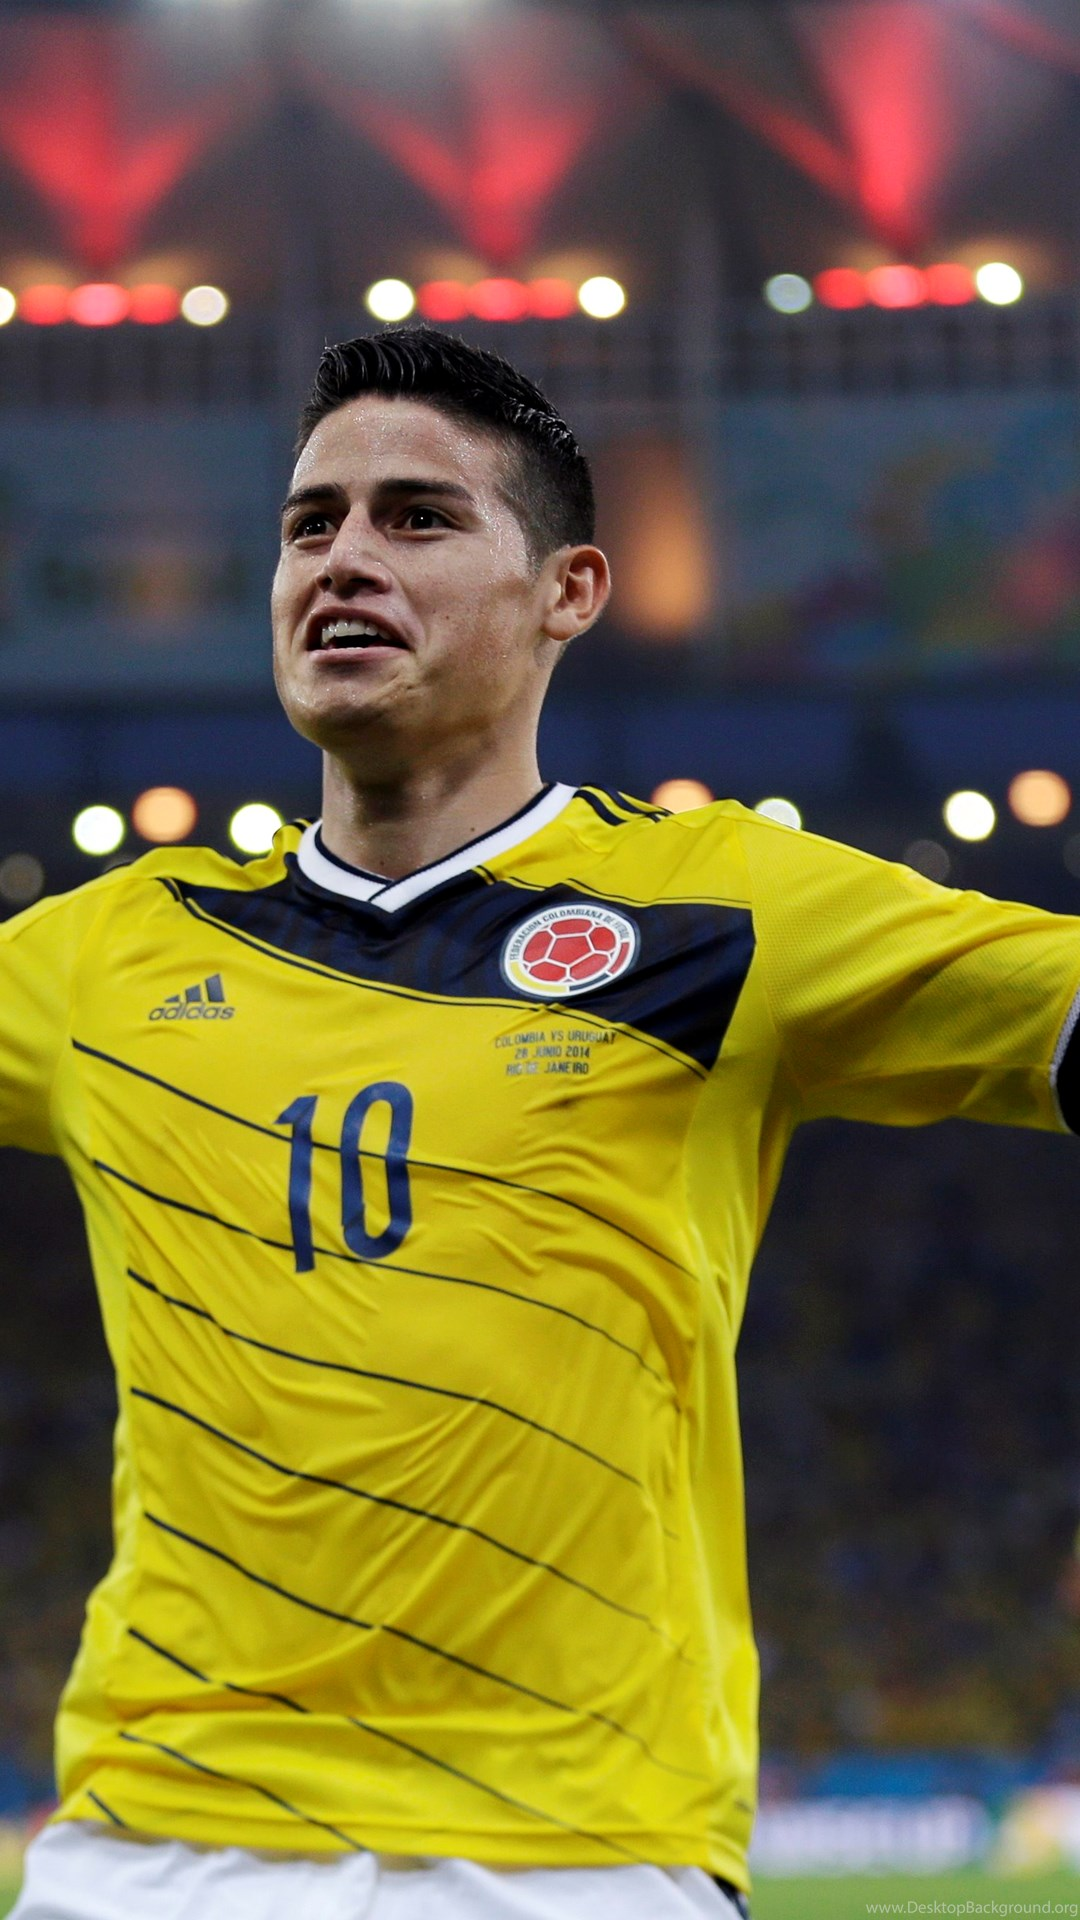 Top 20 james rodriguez hd wallpapers for desktop desktop - James rodriguez wallpaper hd ...